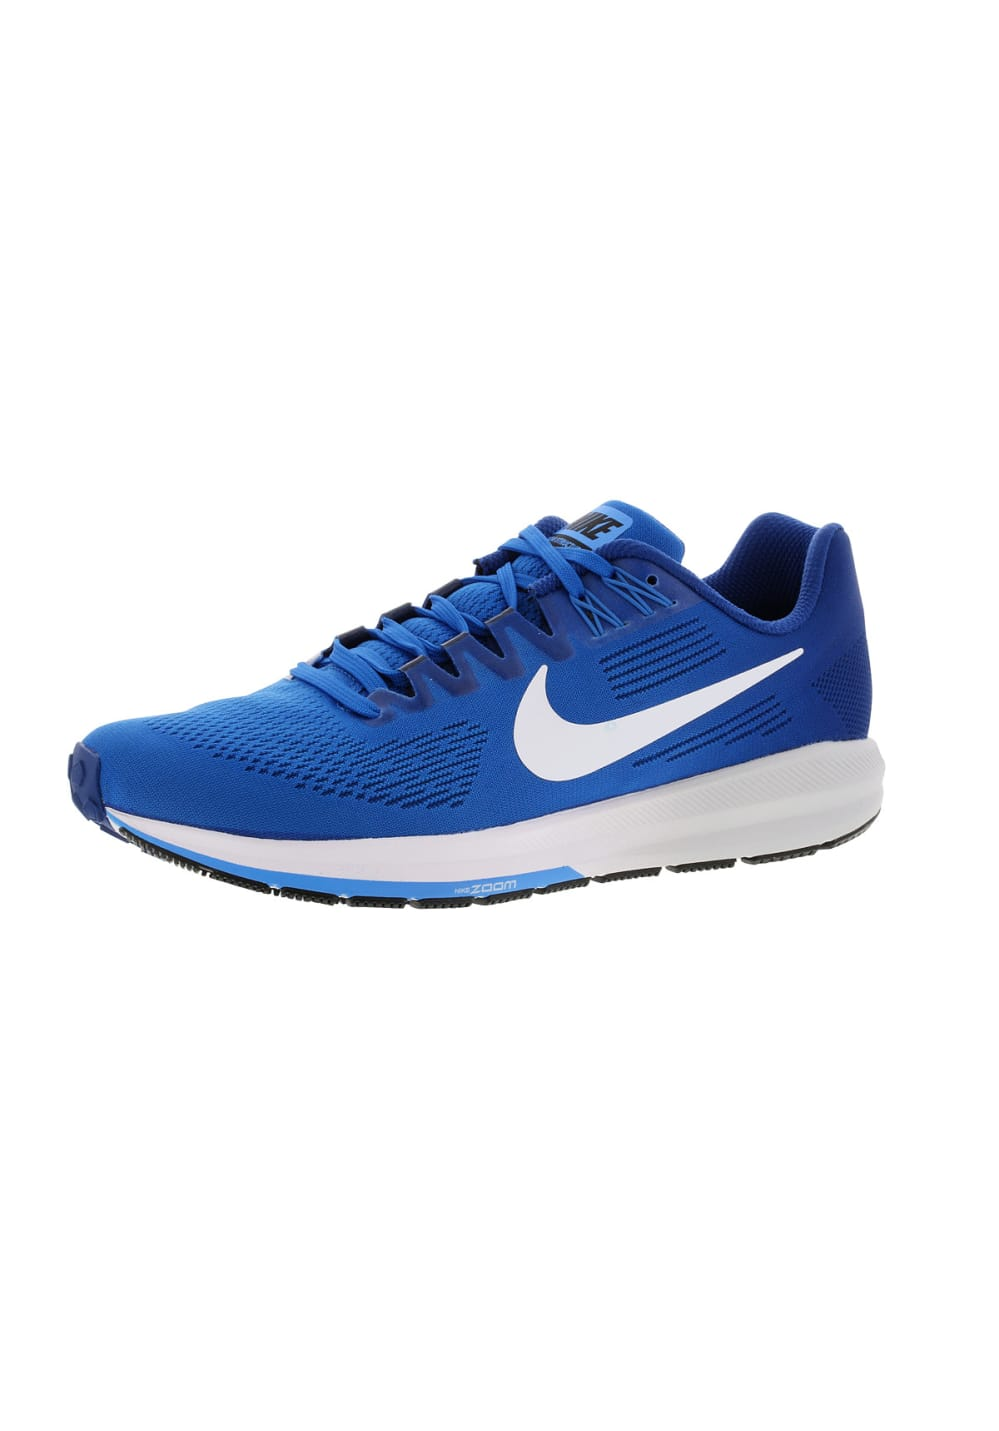 new product b10a9 68c04 Nike Air Zoom Structure 21 - Running shoes for Men - Blue